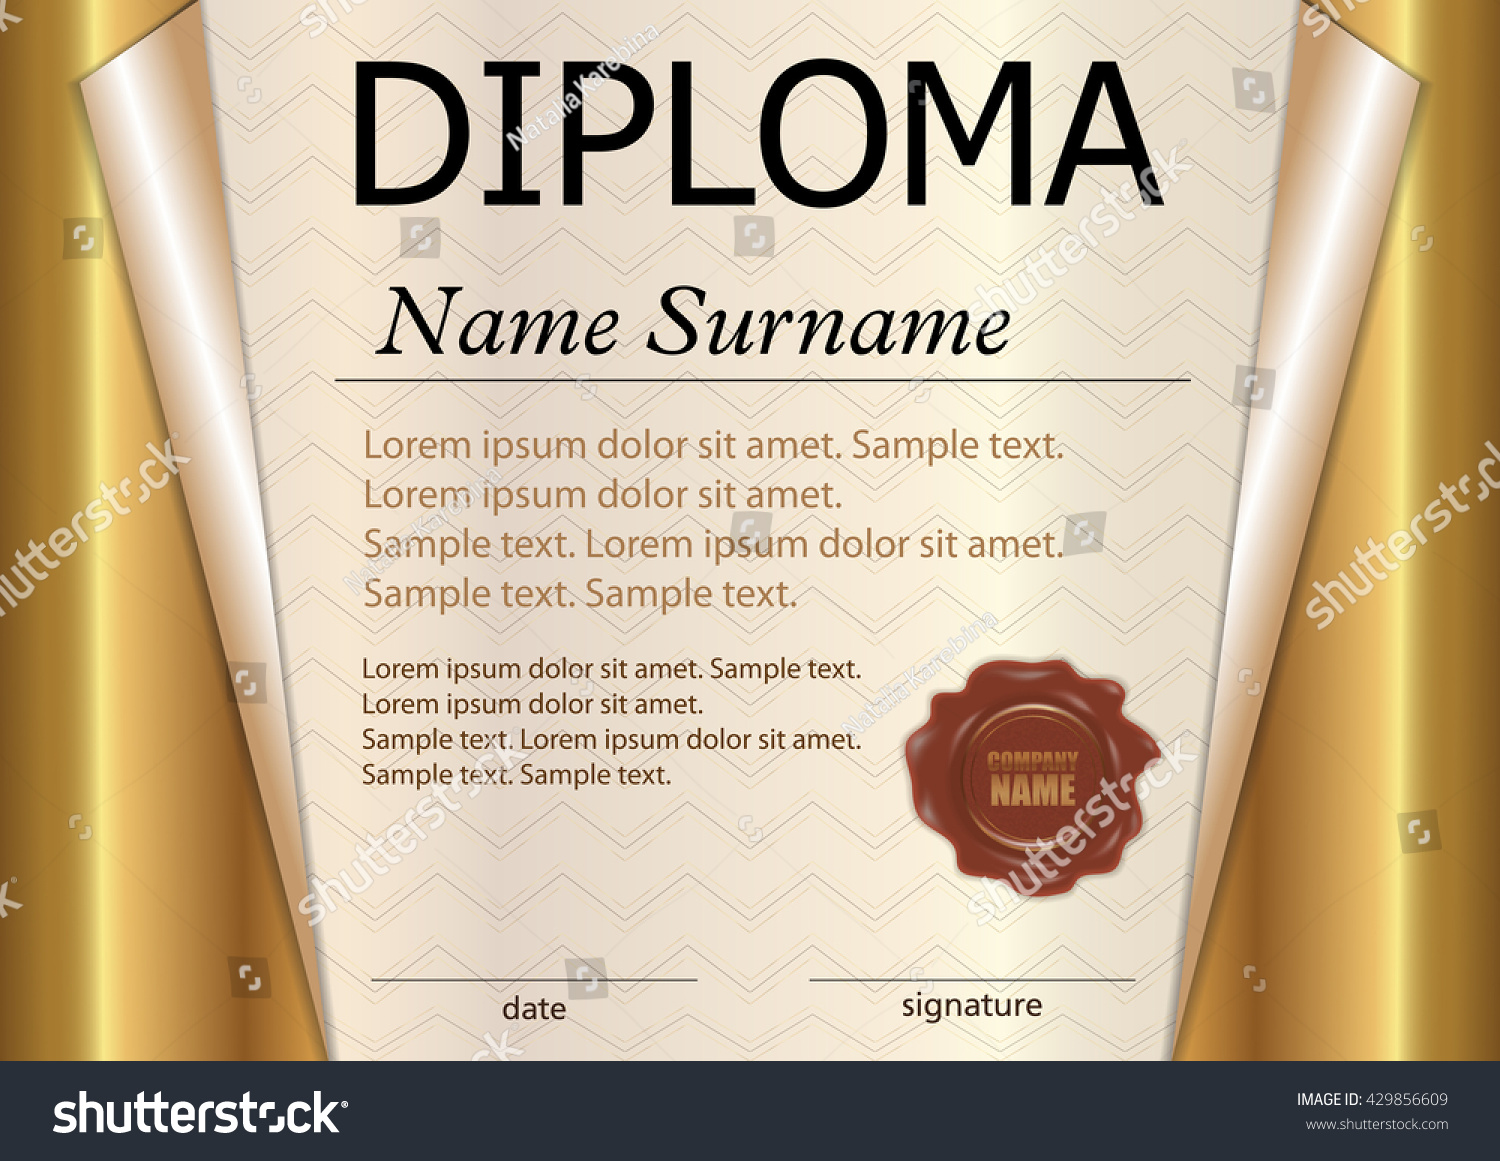 Diploma certificate template award winner winning stock vector diploma or certificate template award winner winning the competition reward gold curled xflitez Image collections